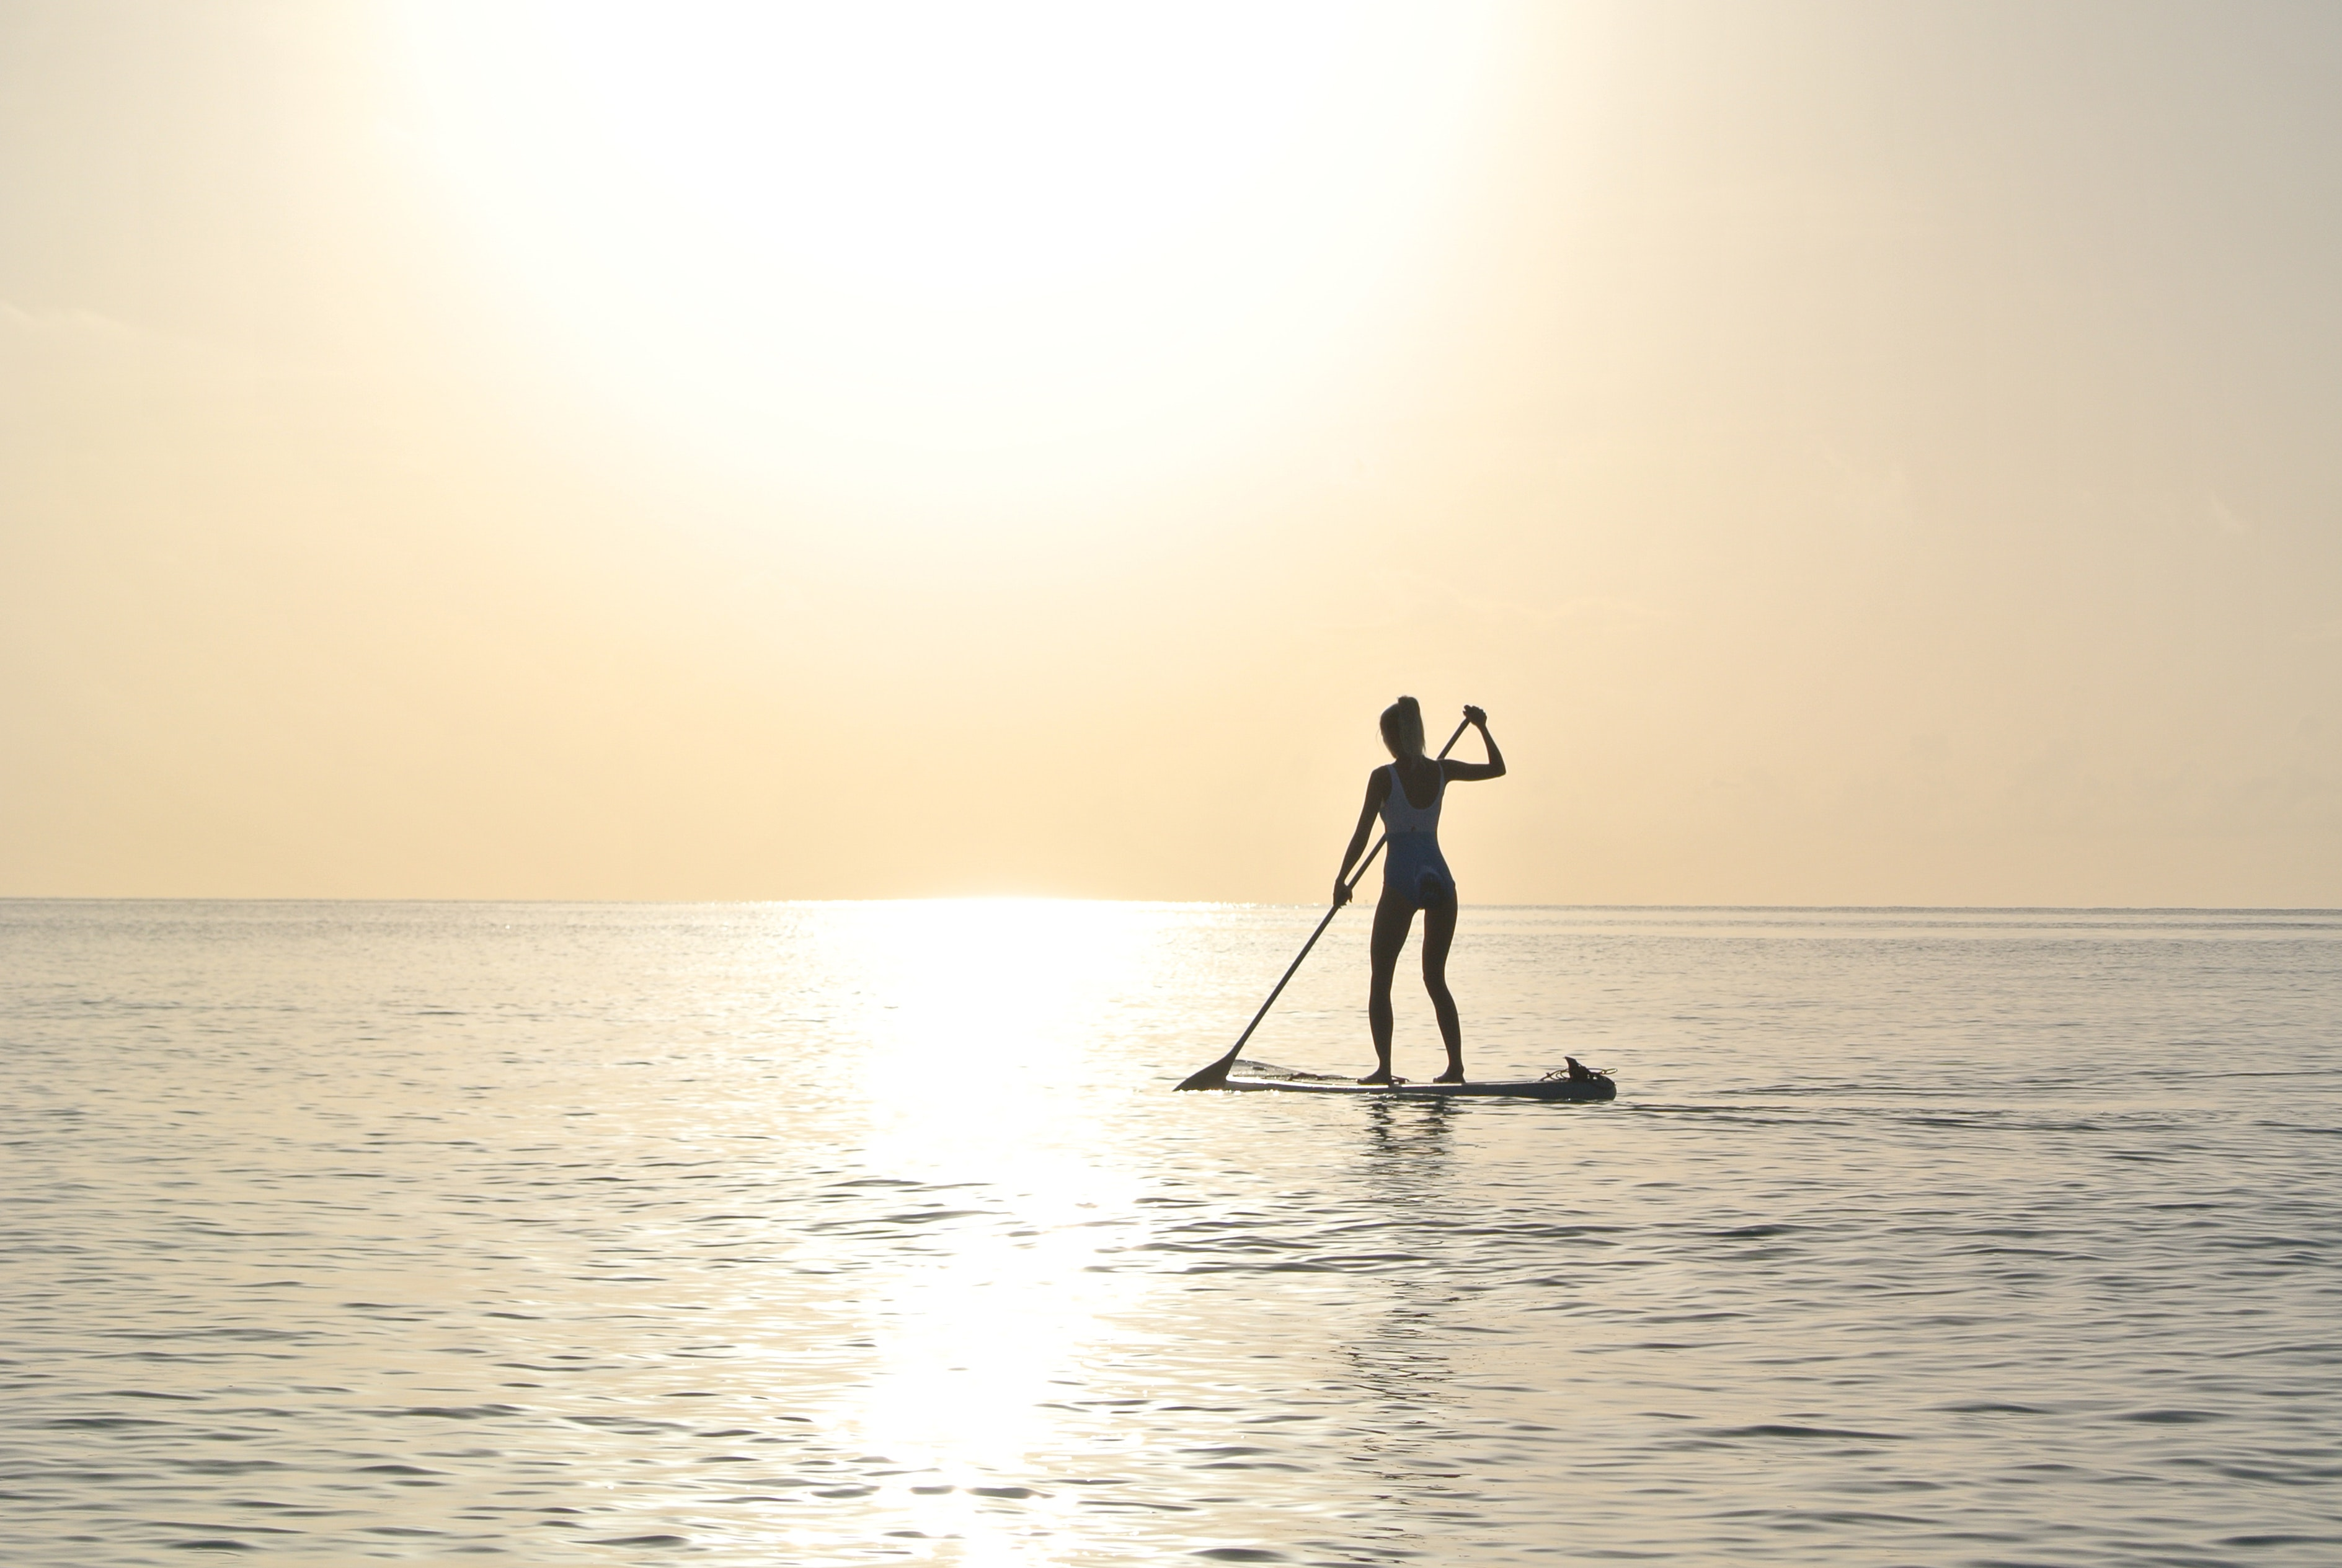 Woman Standing on Paddleboard on Body of Water, Recreation, Woman, Water sports, Water, HQ Photo